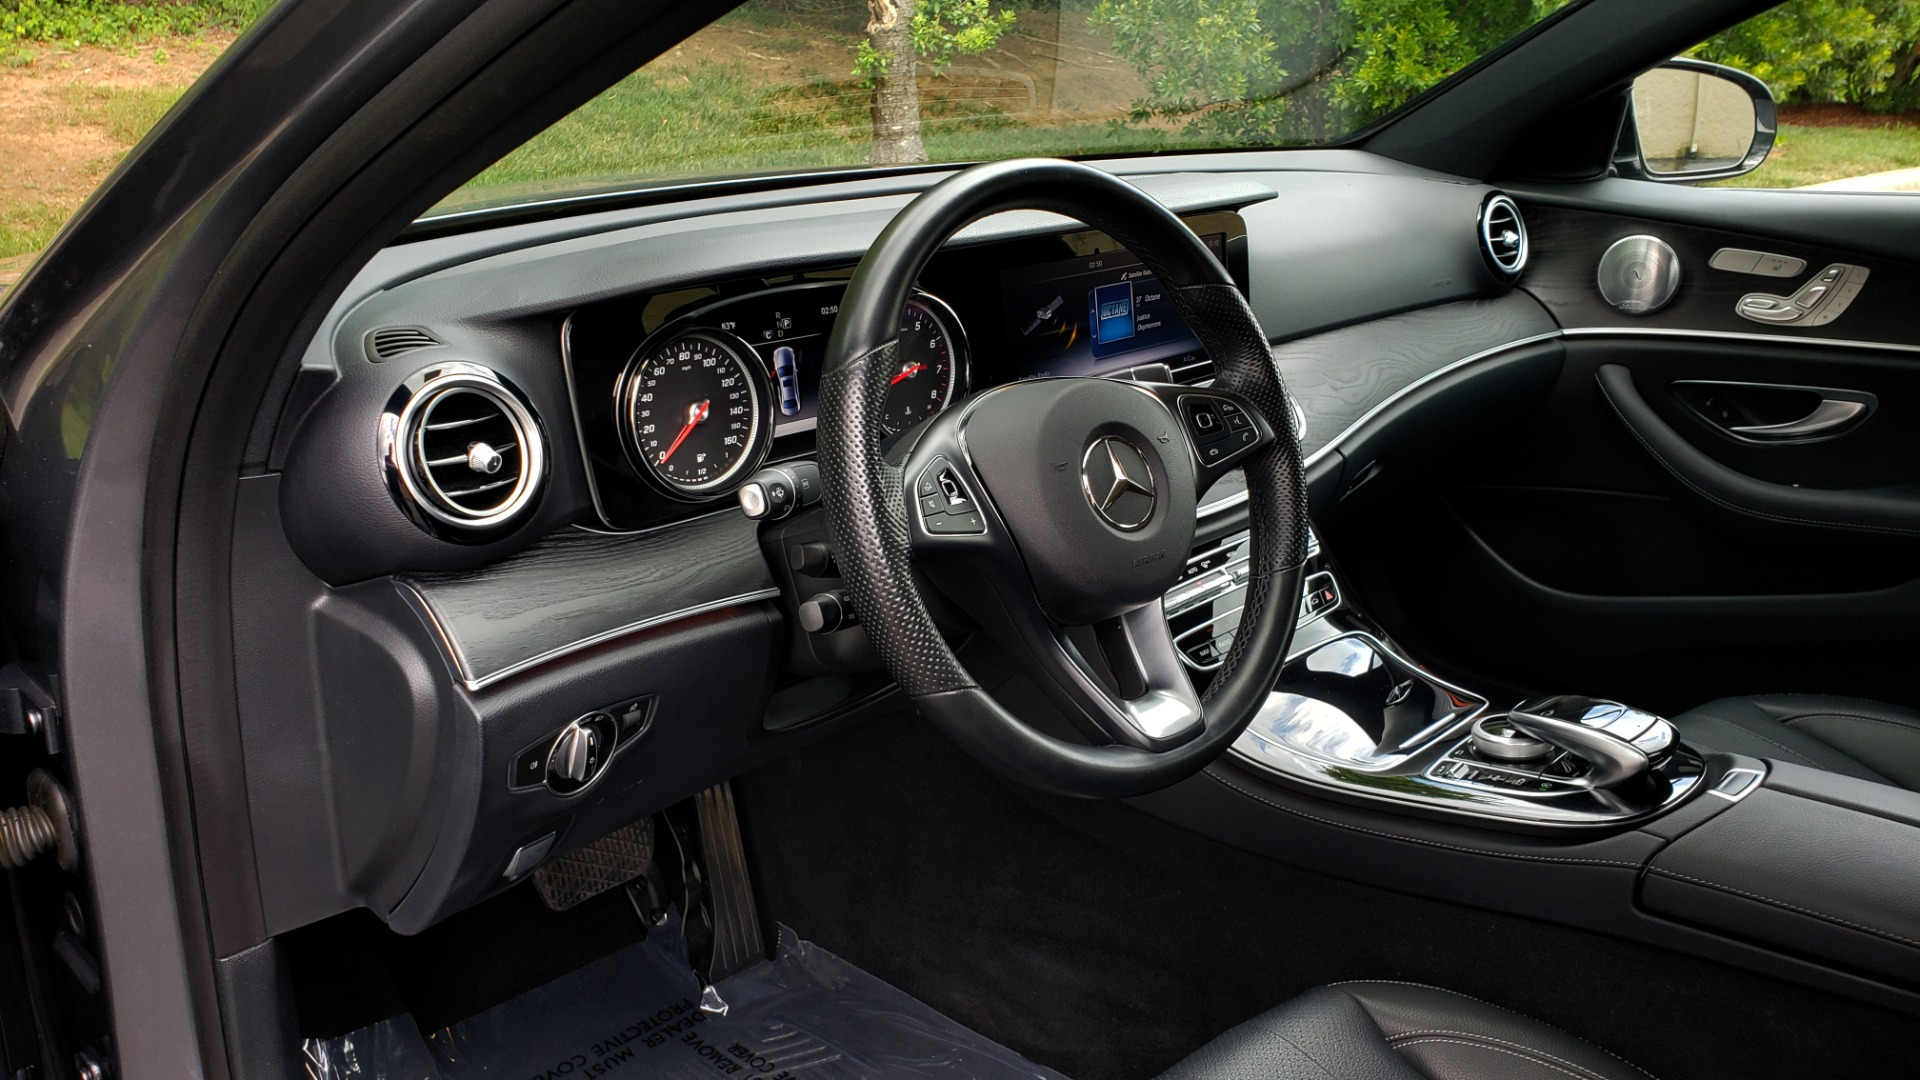 Used 2017 Mercedes-Benz E-CLASS E 300 SPORT 4MATIC / PREM PKG / NAV / SUNROOF / BURMESTER SND / REARVIEW for sale Sold at Formula Imports in Charlotte NC 28227 34